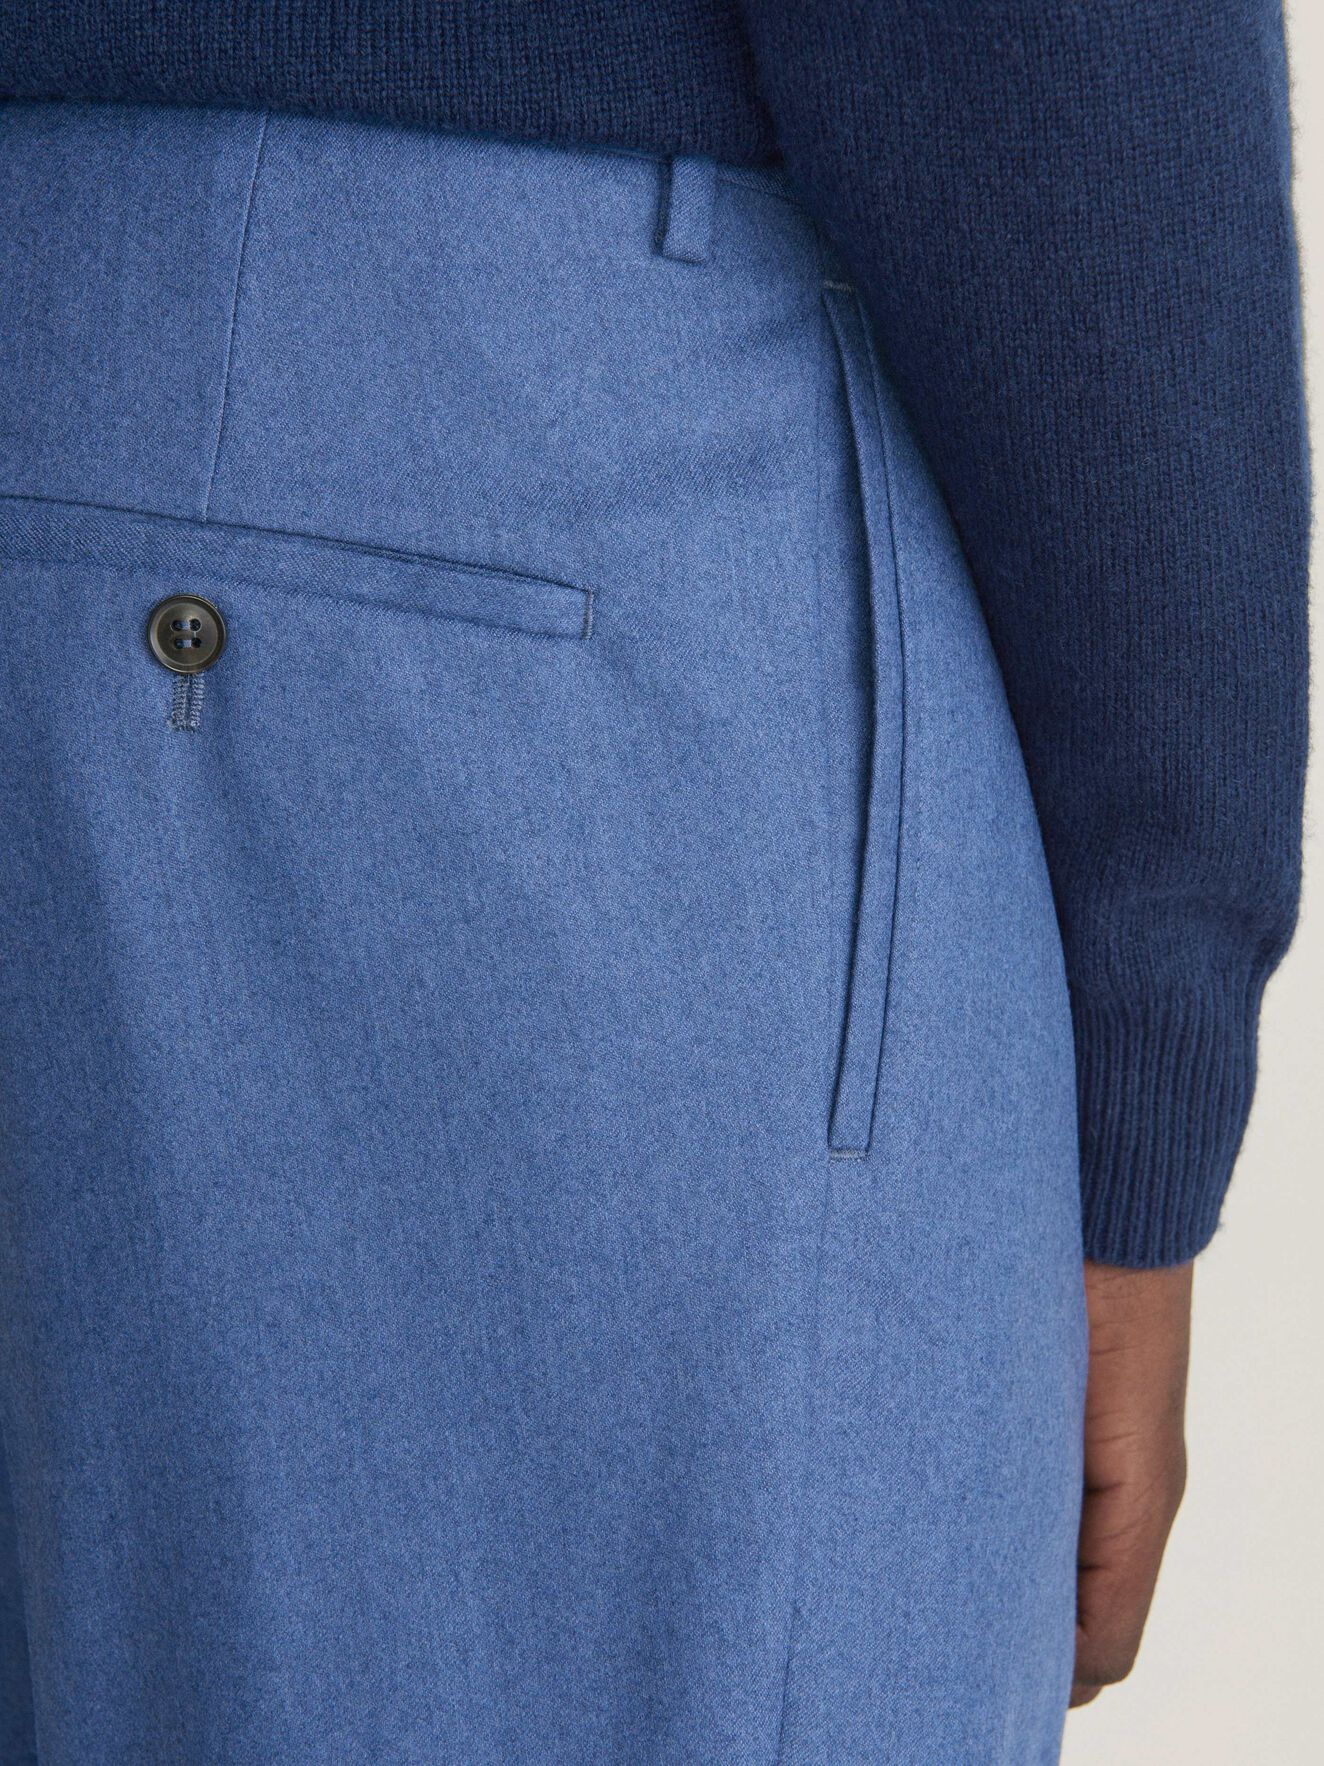 Tarpino Trousers in Blues from Tiger of Sweden